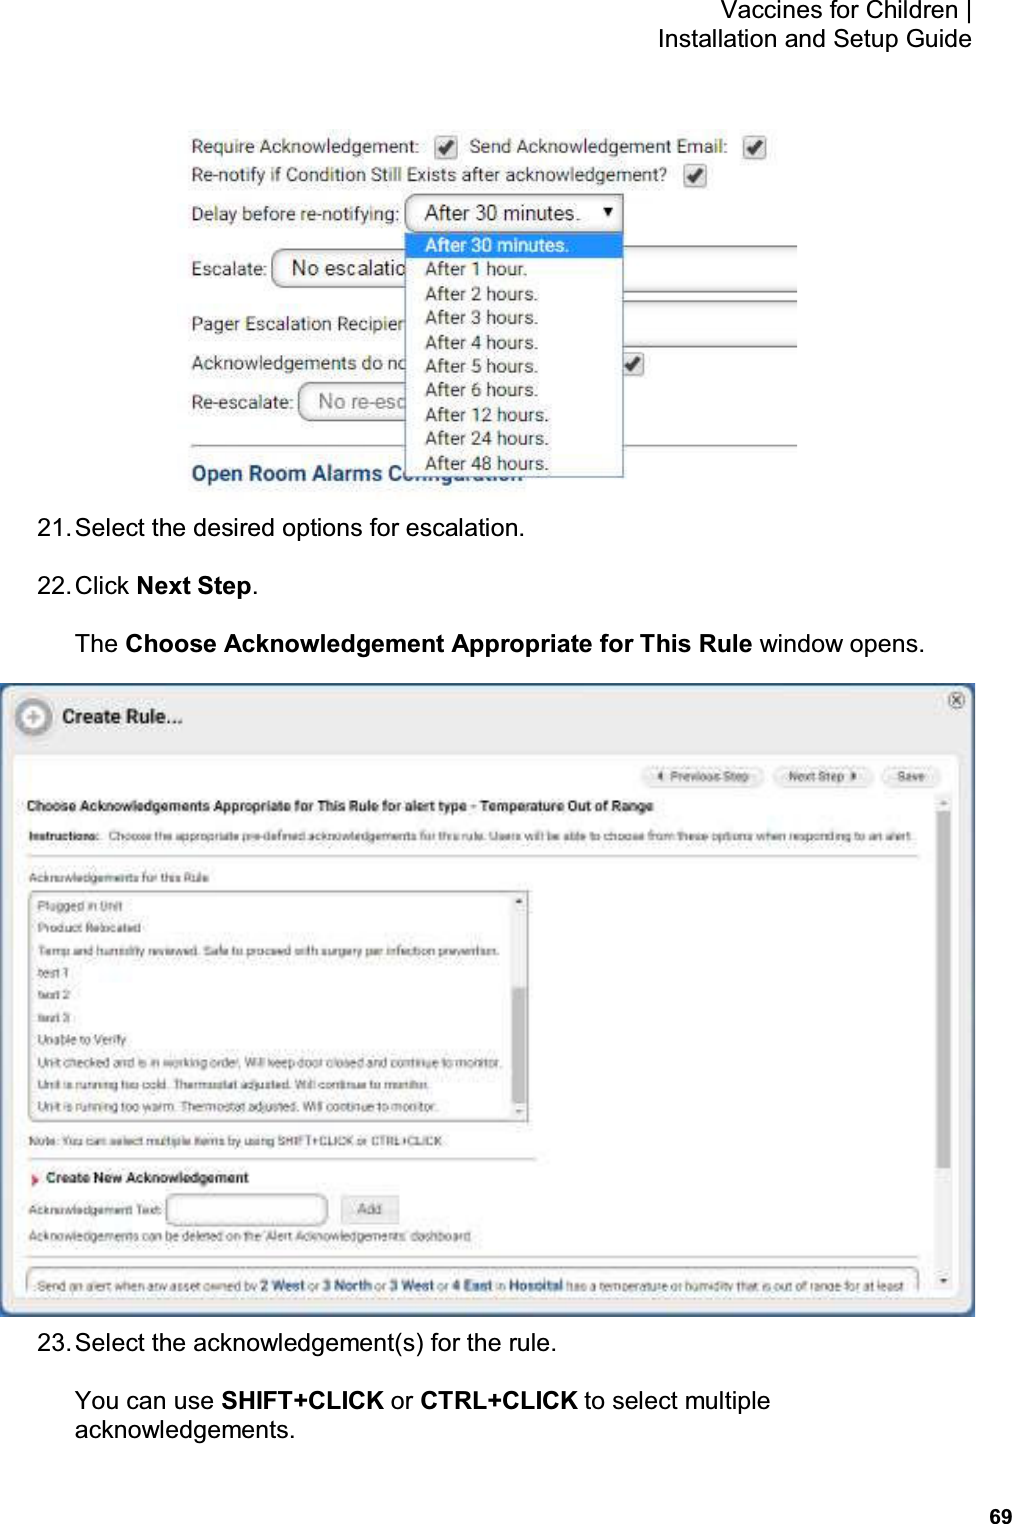 69 Vaccines for Children    Installation and Setup Guide  21. Select the desired options for escalation. 22. Click Next Step. The Choose Acknowledgement Appropriate for This Rule window opens.  23. Select the acknowledgement(s) for the rule. You can use SHIFT+CLICK or CTRL+CLICK to select multiple acknowledgements.